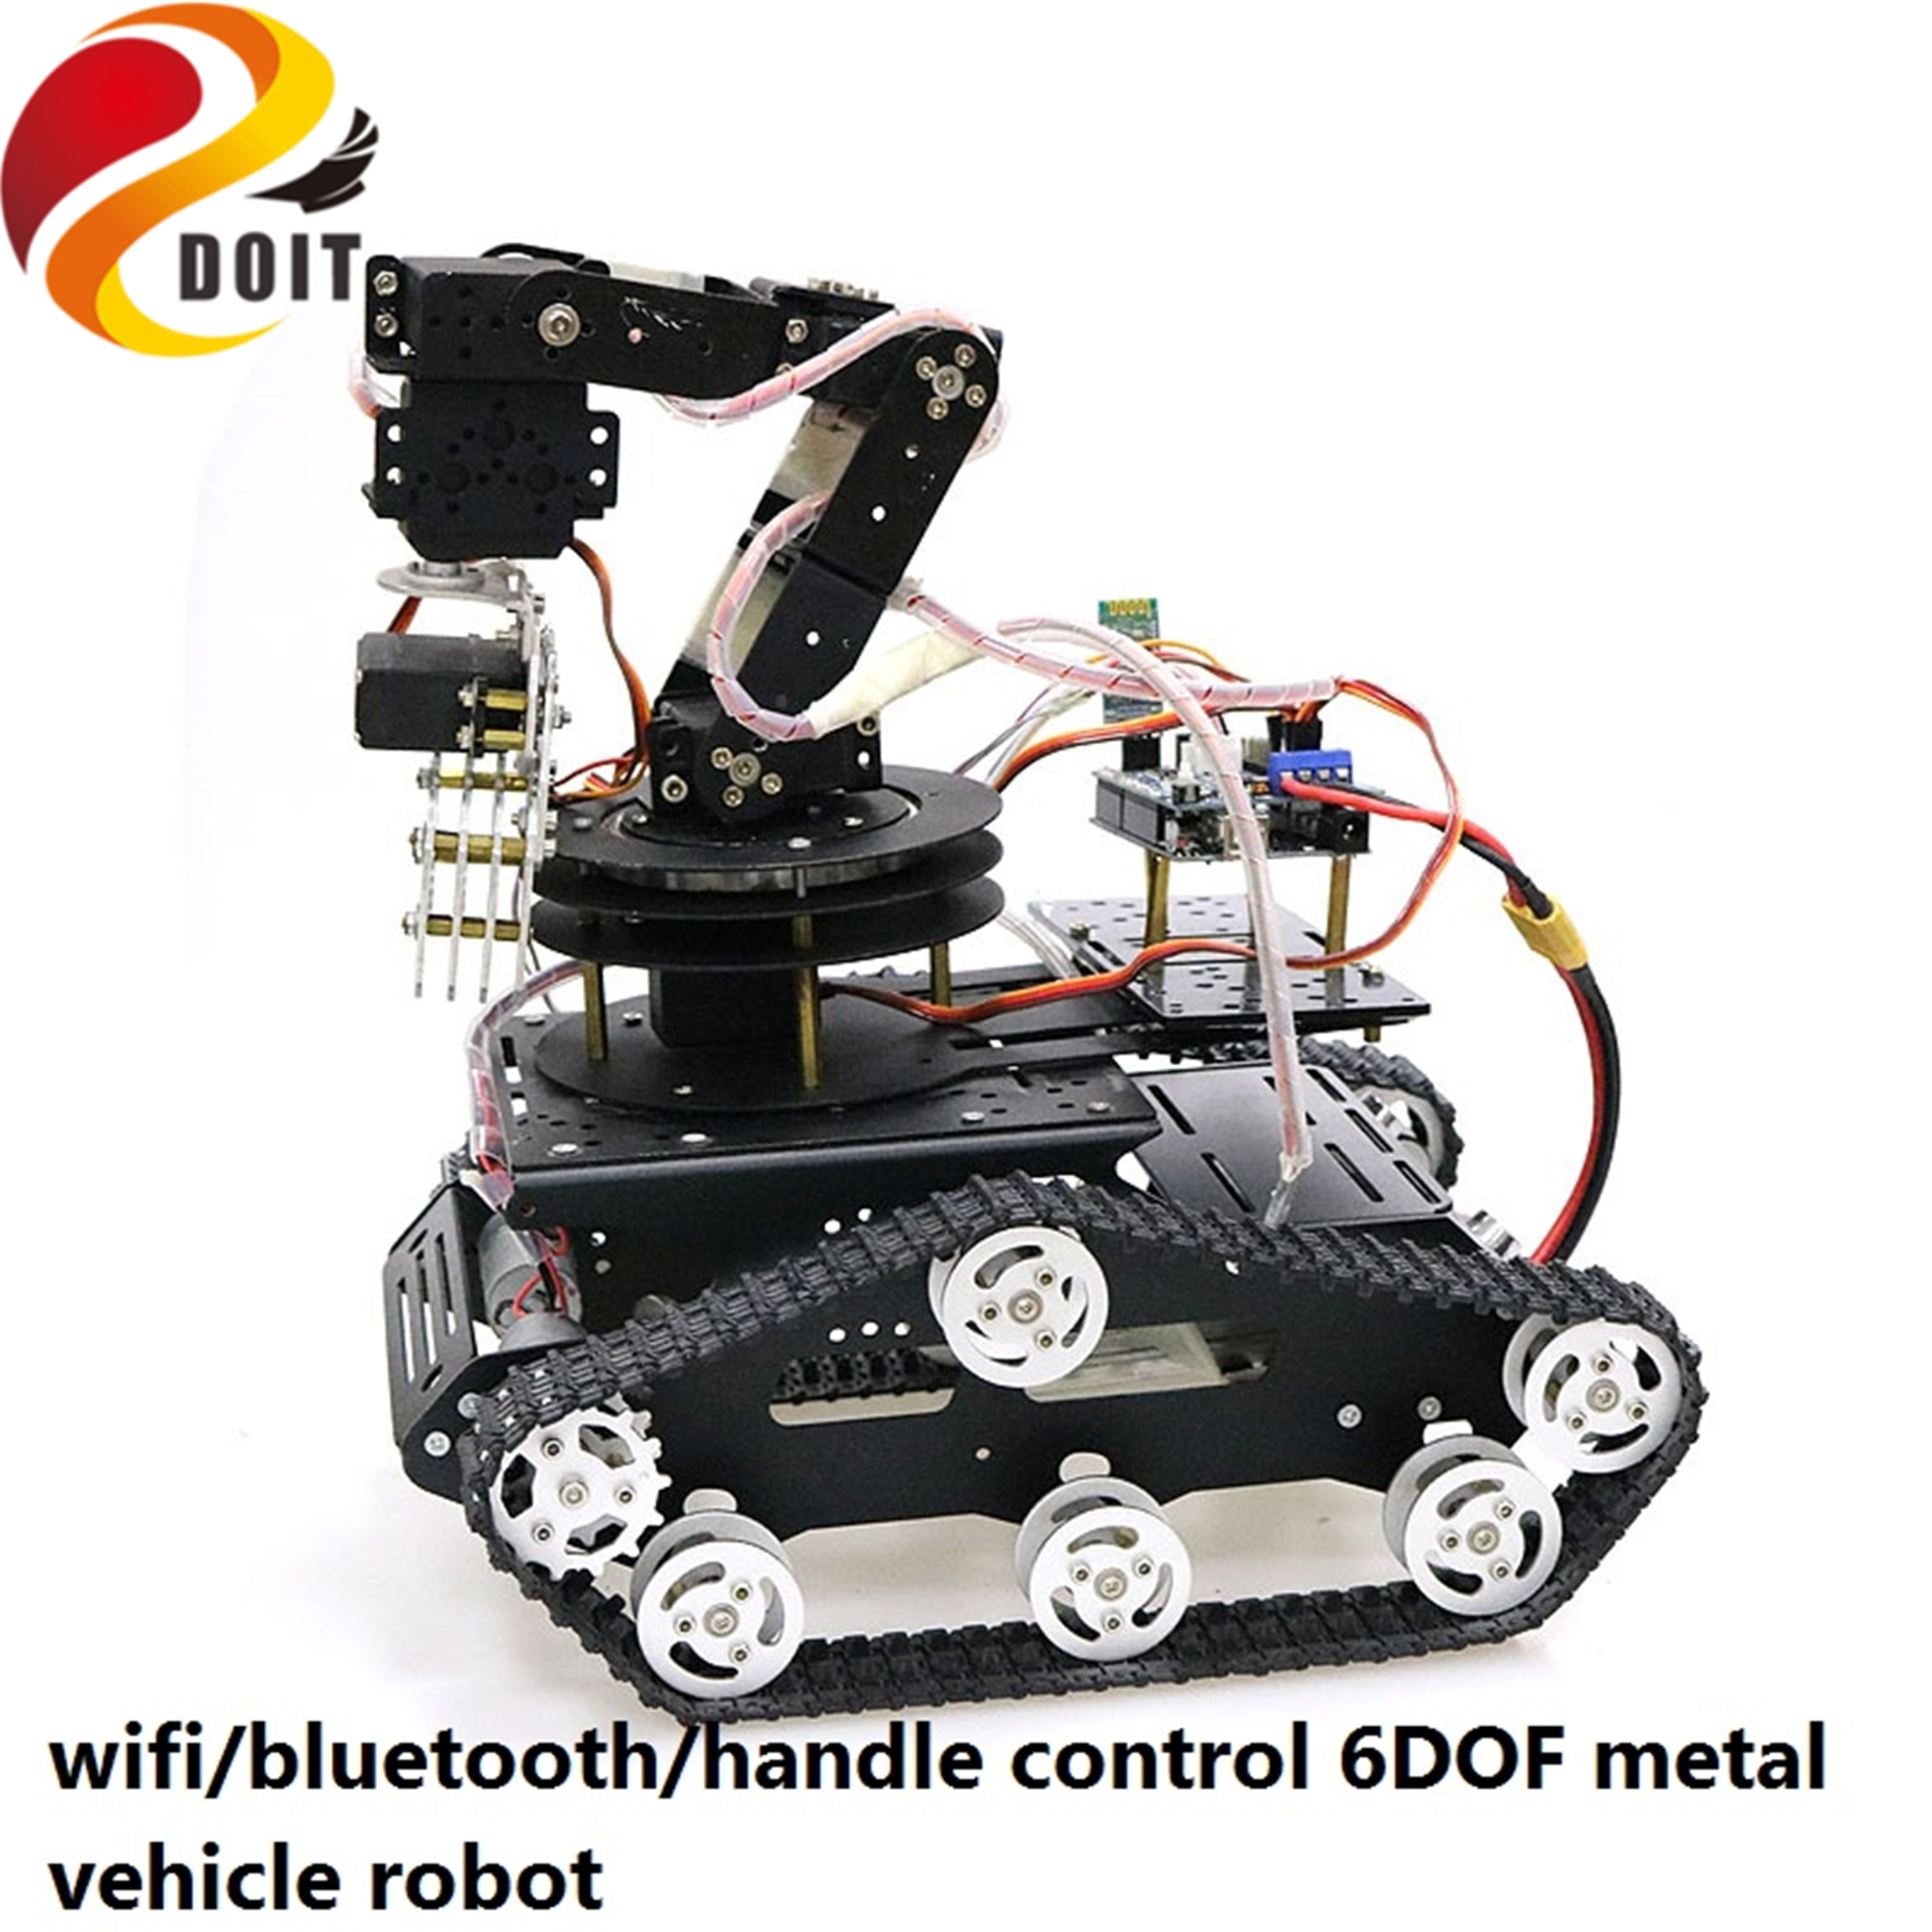 SZDOIT Wifi/Bluetooth/Handle Control Full Metal 6-Axis Robotic Arm With Gripper +Y100 Tracked Tank C